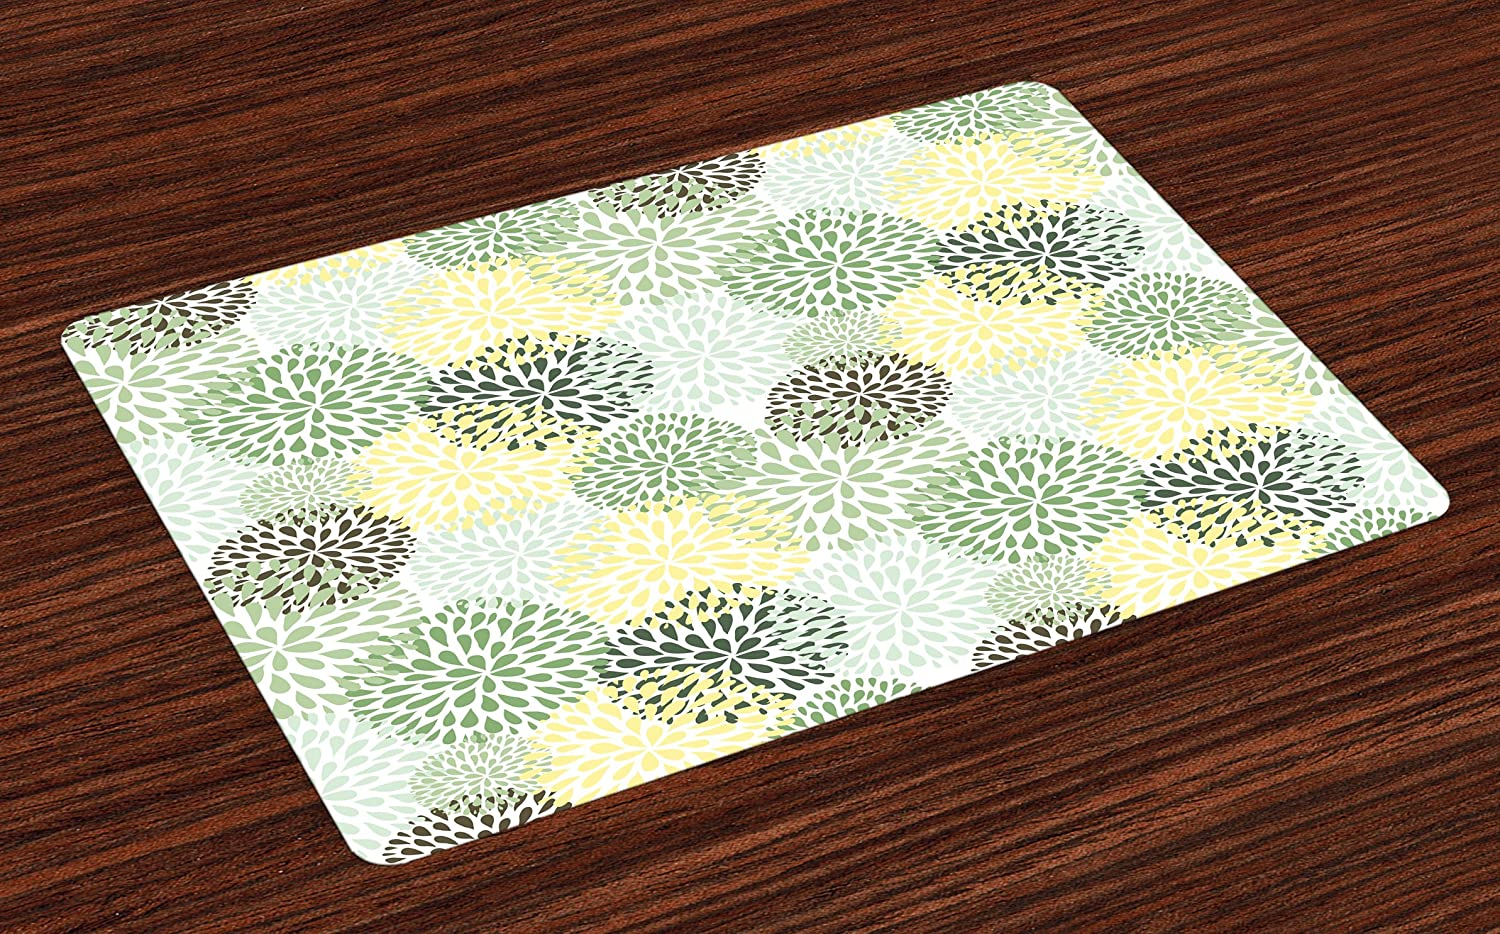 Lunarable Floral Place Mats Set of 4, Modern Floral Ornate Petals Flourish Traditional Springtime Garden Leaves, Washable Fabric Placemats for Dining Room Kitchen Table Decoration, Green Yellow Brown